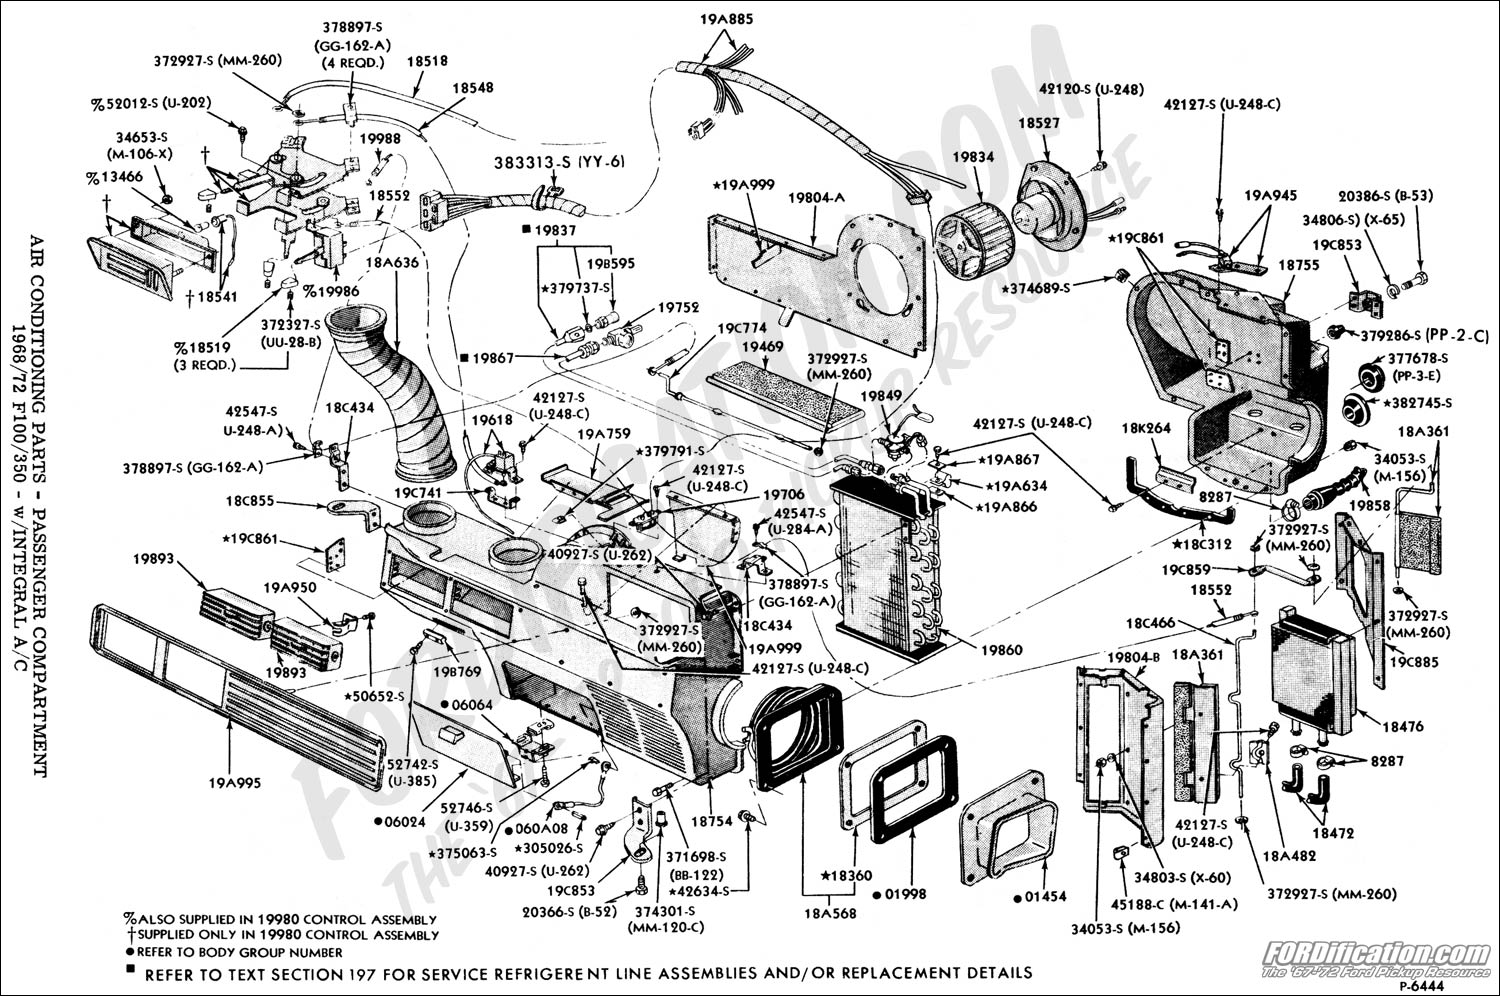 2000 Hyundai Accent Engine Wiring Schematic 2009 Hyundai